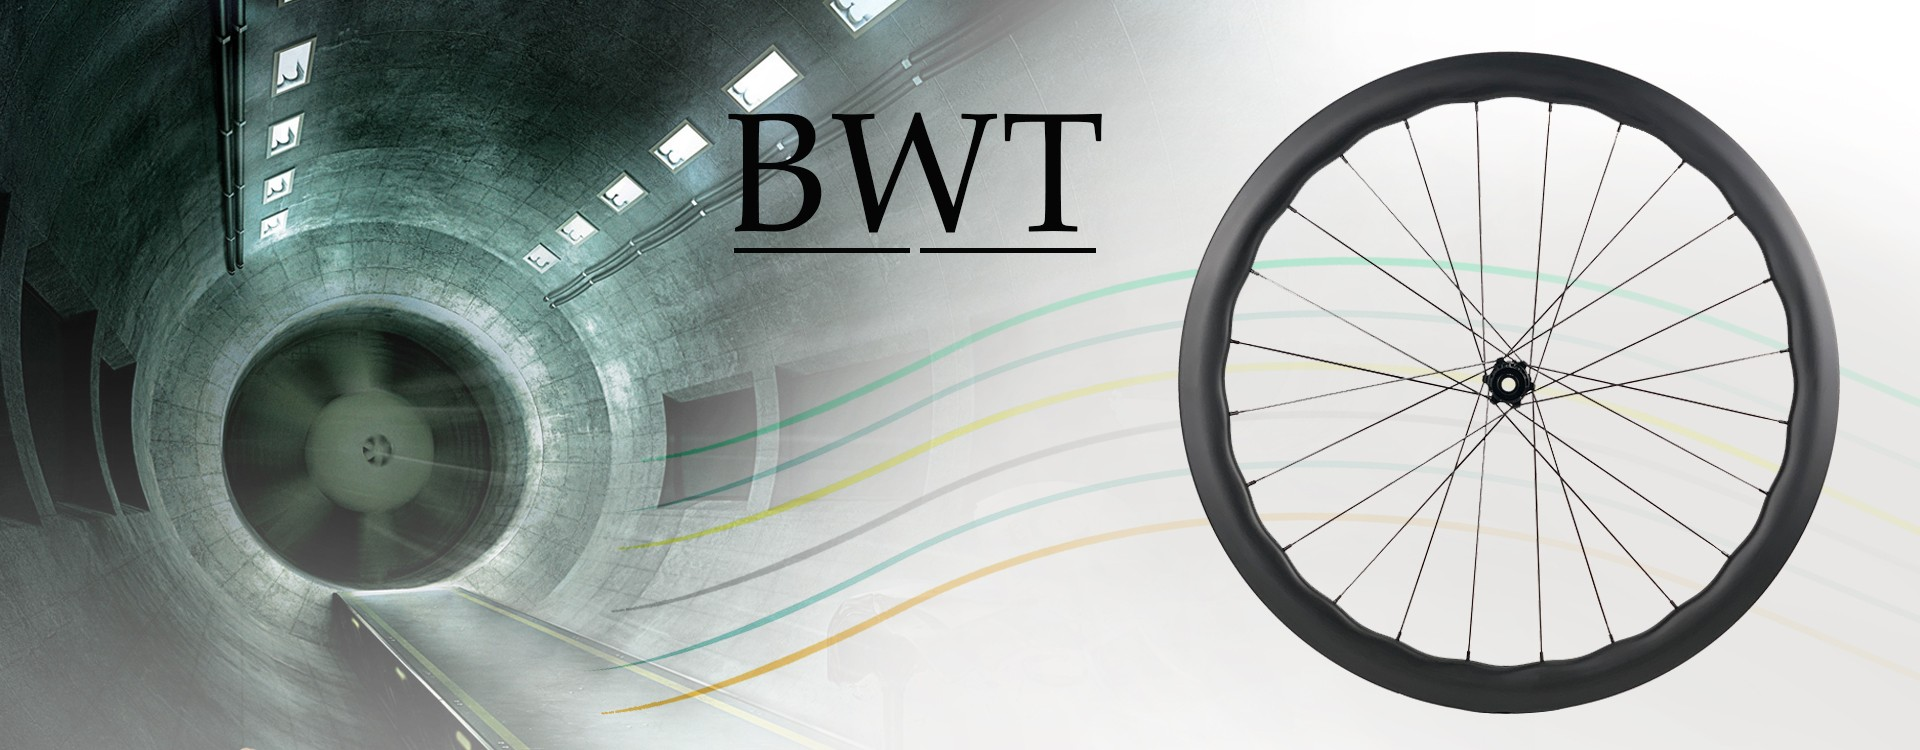 New arrivals BWT wheelset